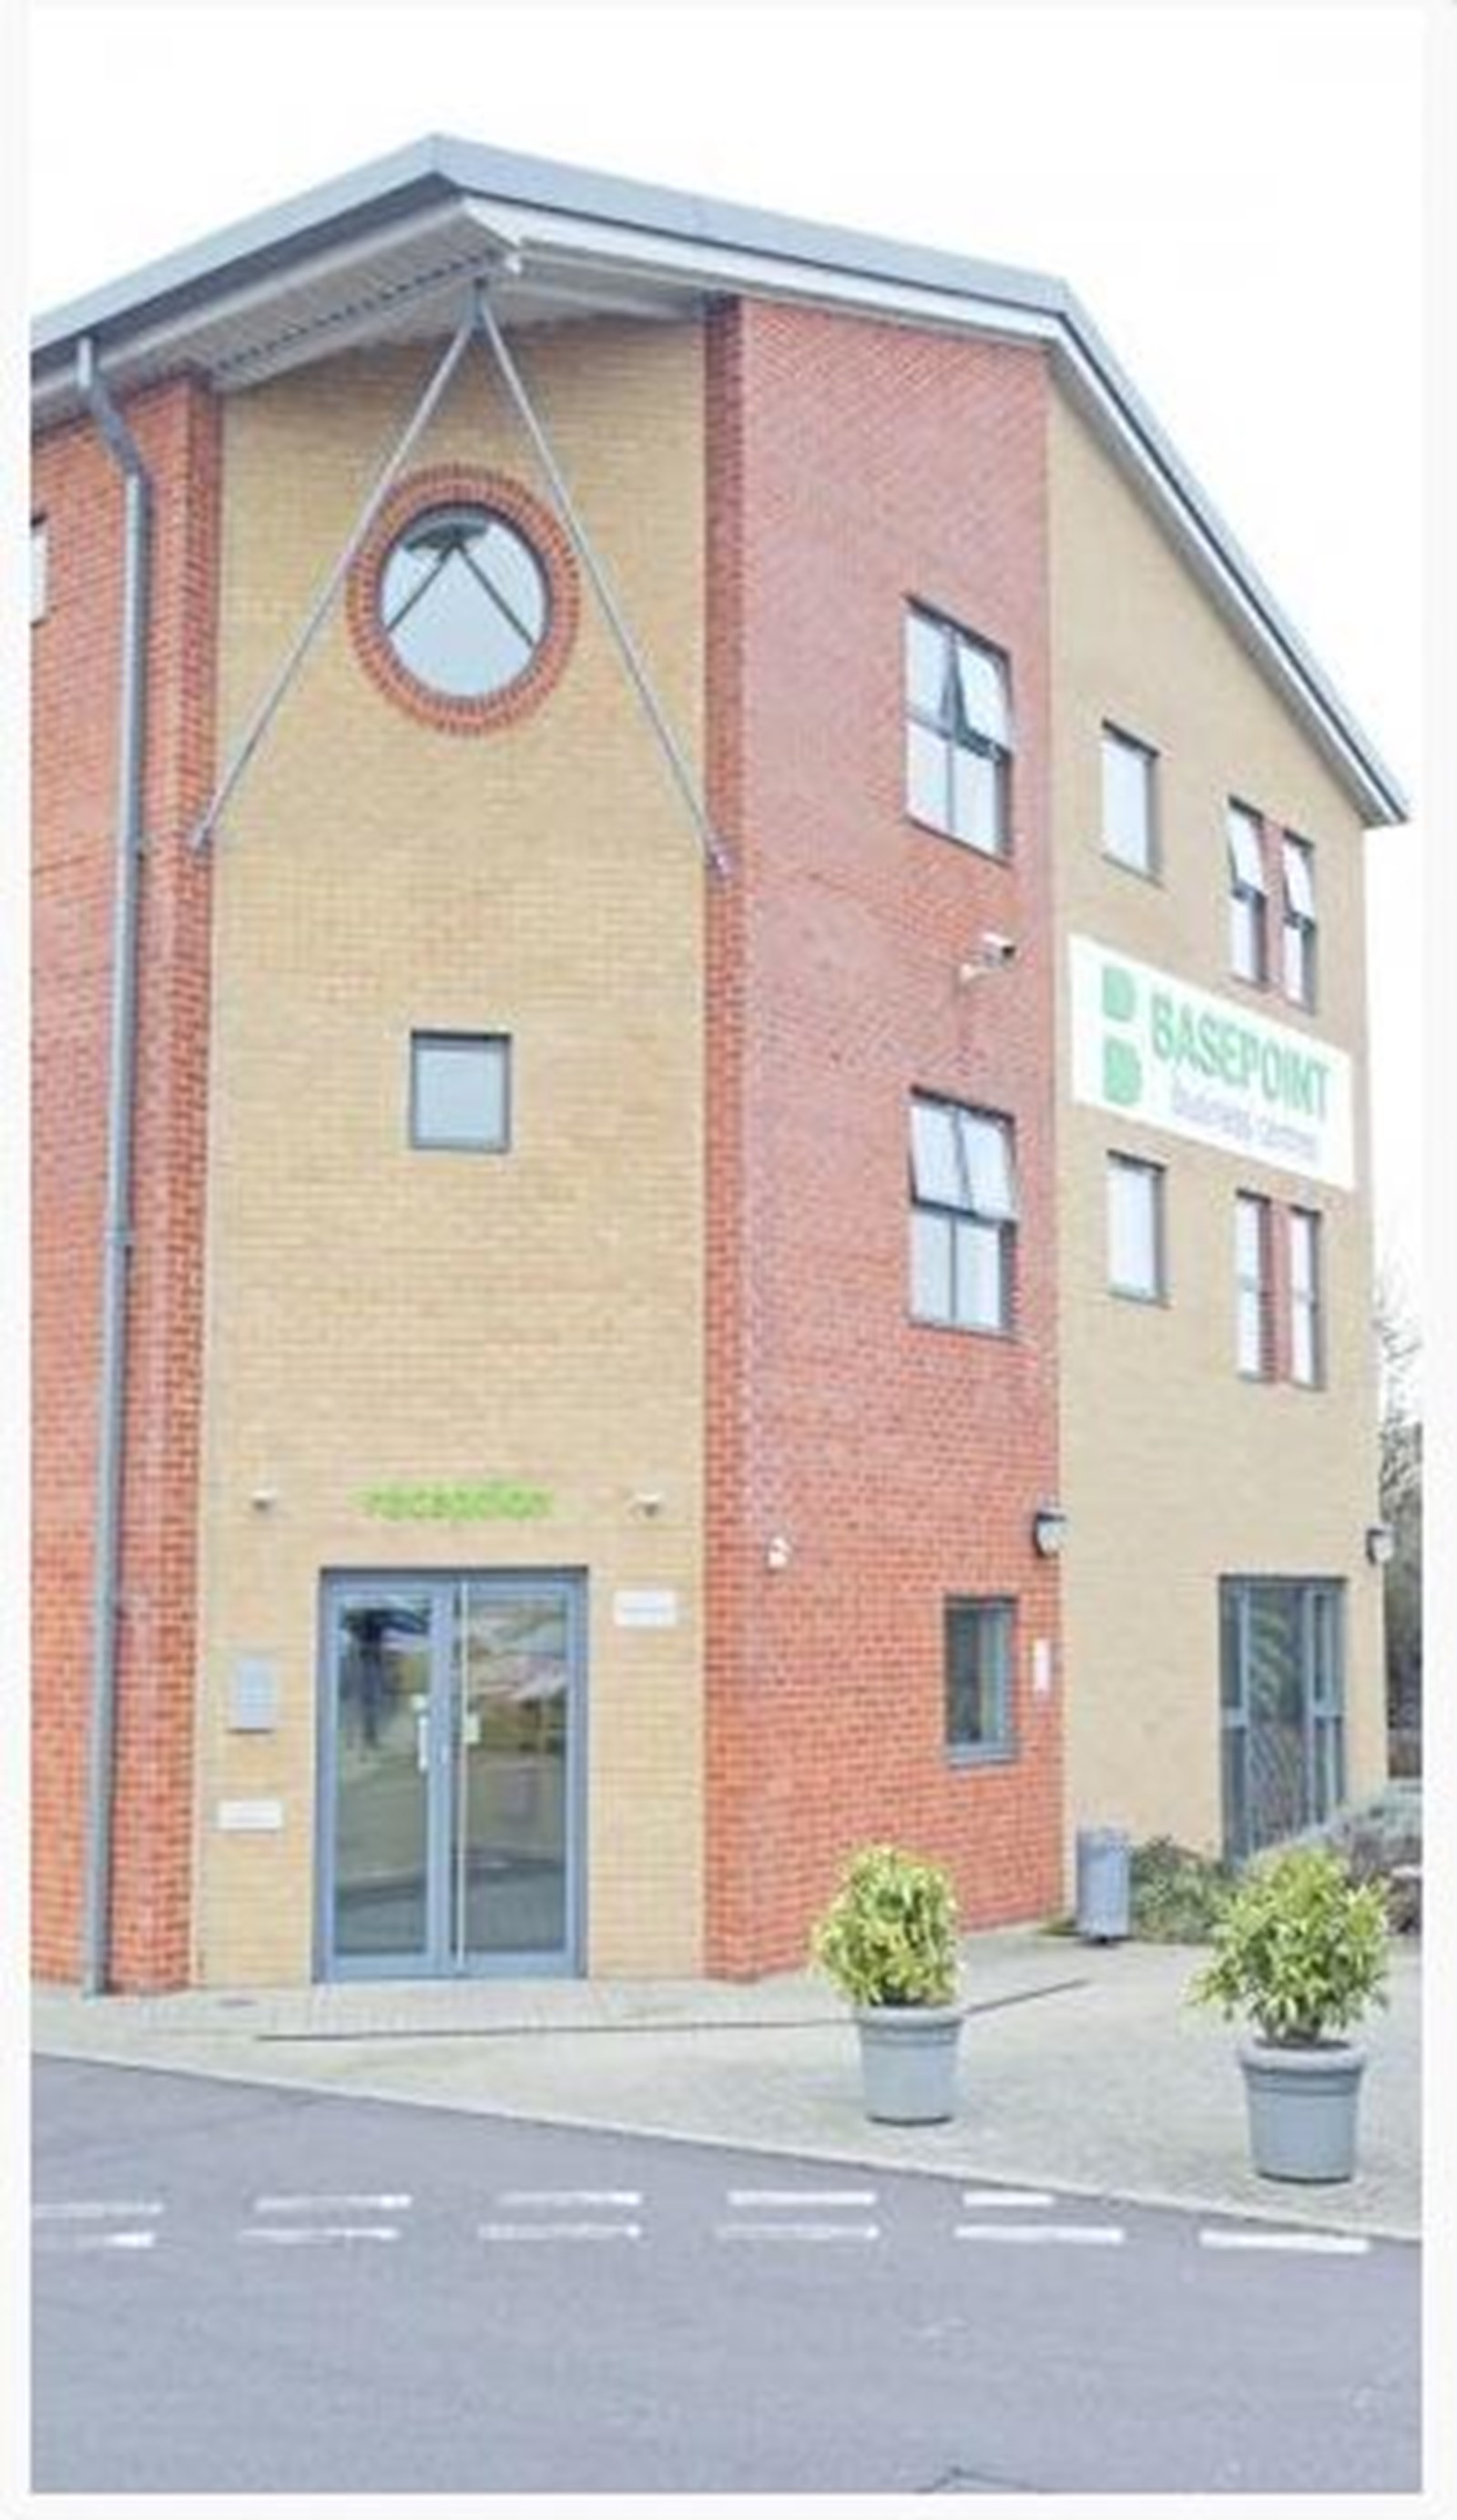 Andover Basepoint